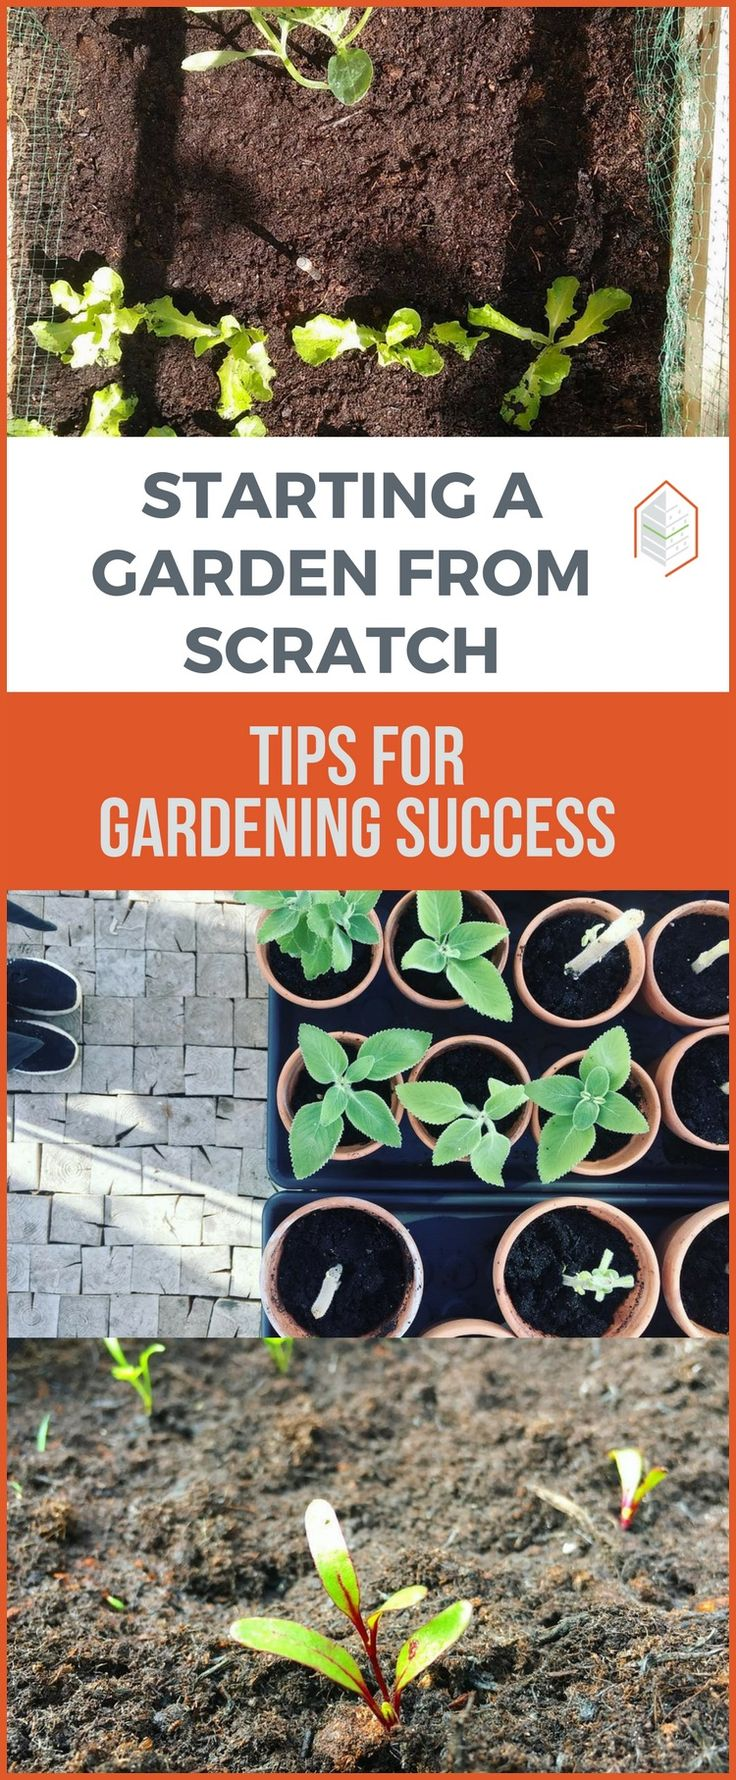 Starting a Garden from Scratch: Tips for Gardening Success Starting a garden from scratch is not hard. Gardening can be learnt through experience. These simple steps will be helpful to you in starting a garden. #urbangardening #gardening #diy #garden #UGRPOST